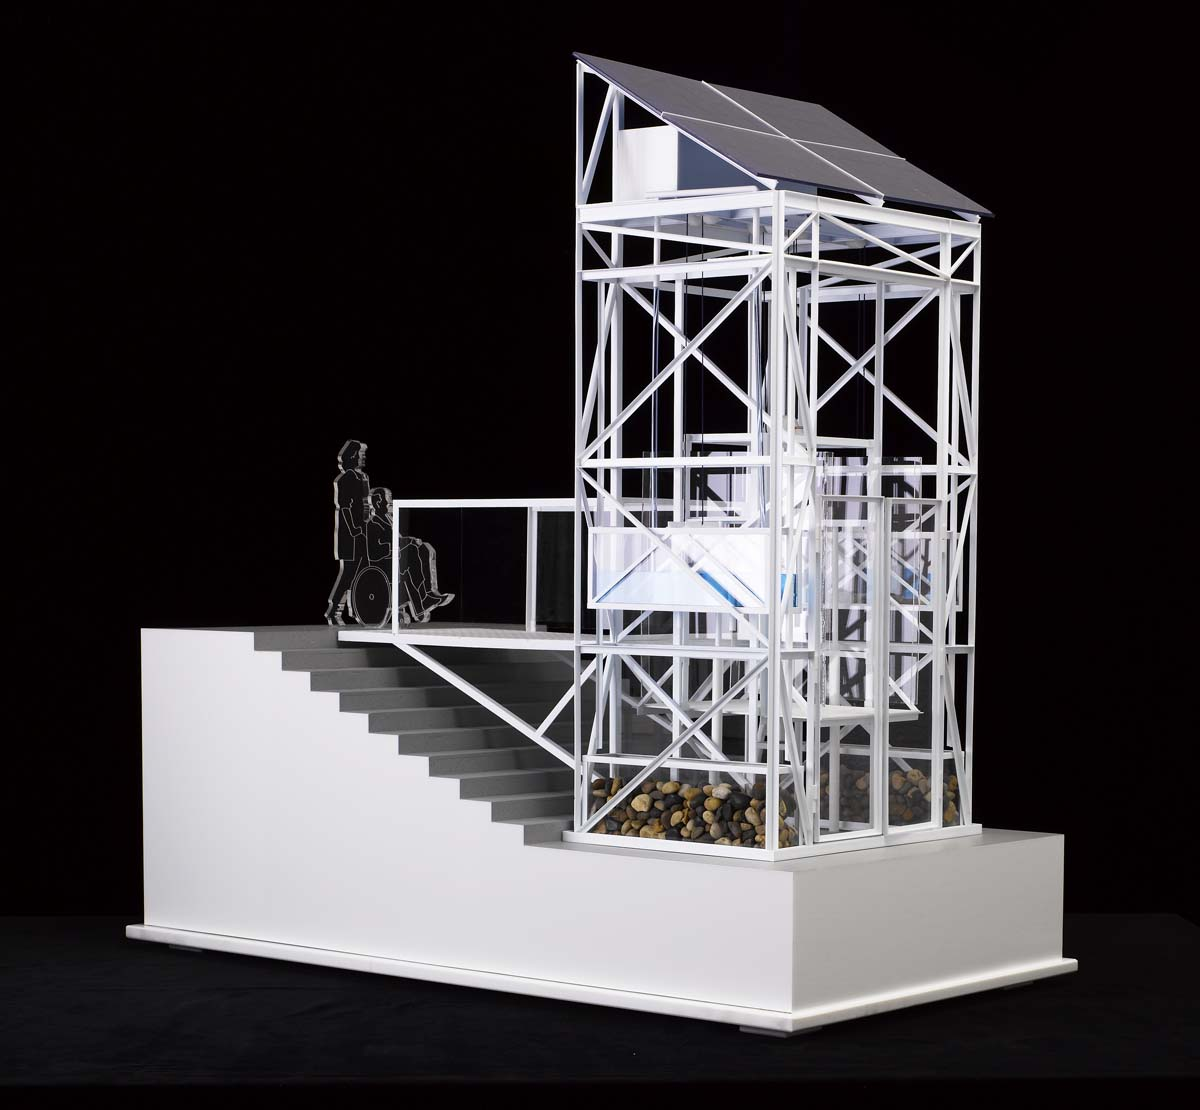 Water Lift: Scale Model, London